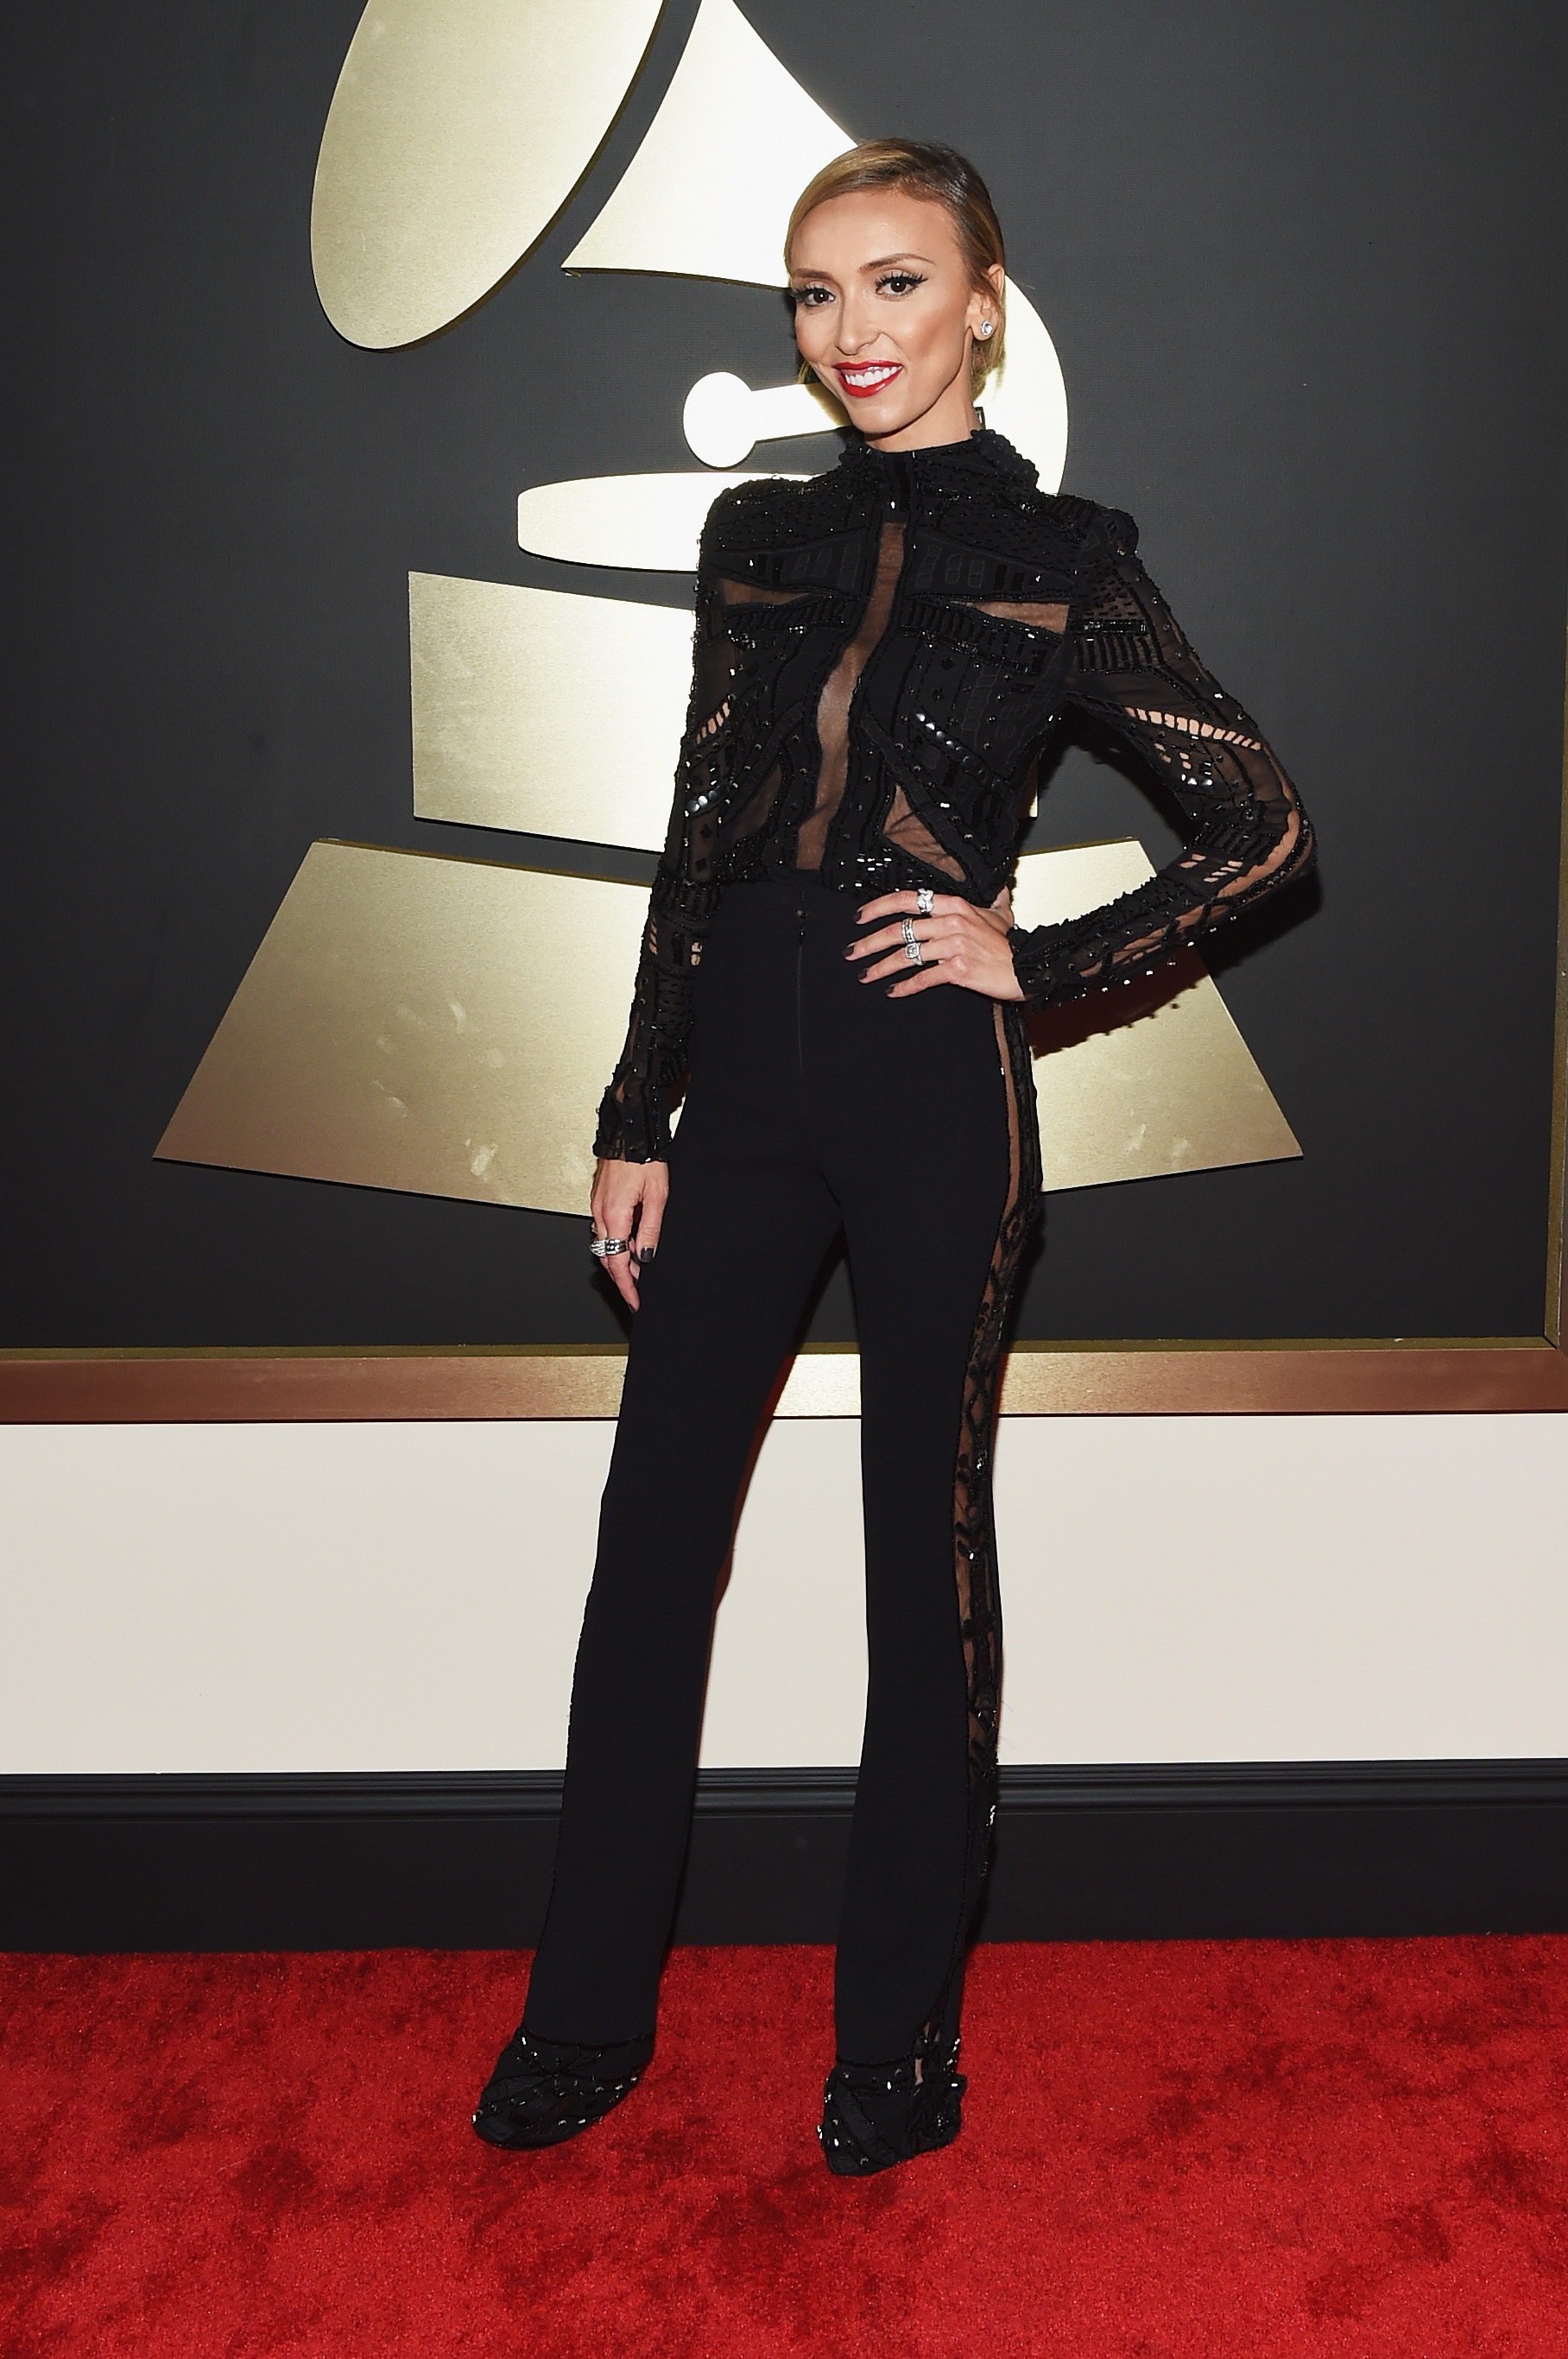 Grammy Awards' hottest red carpet looks, starring Taylor Swift, Katy Perry and Chris Brown [GALLERY]